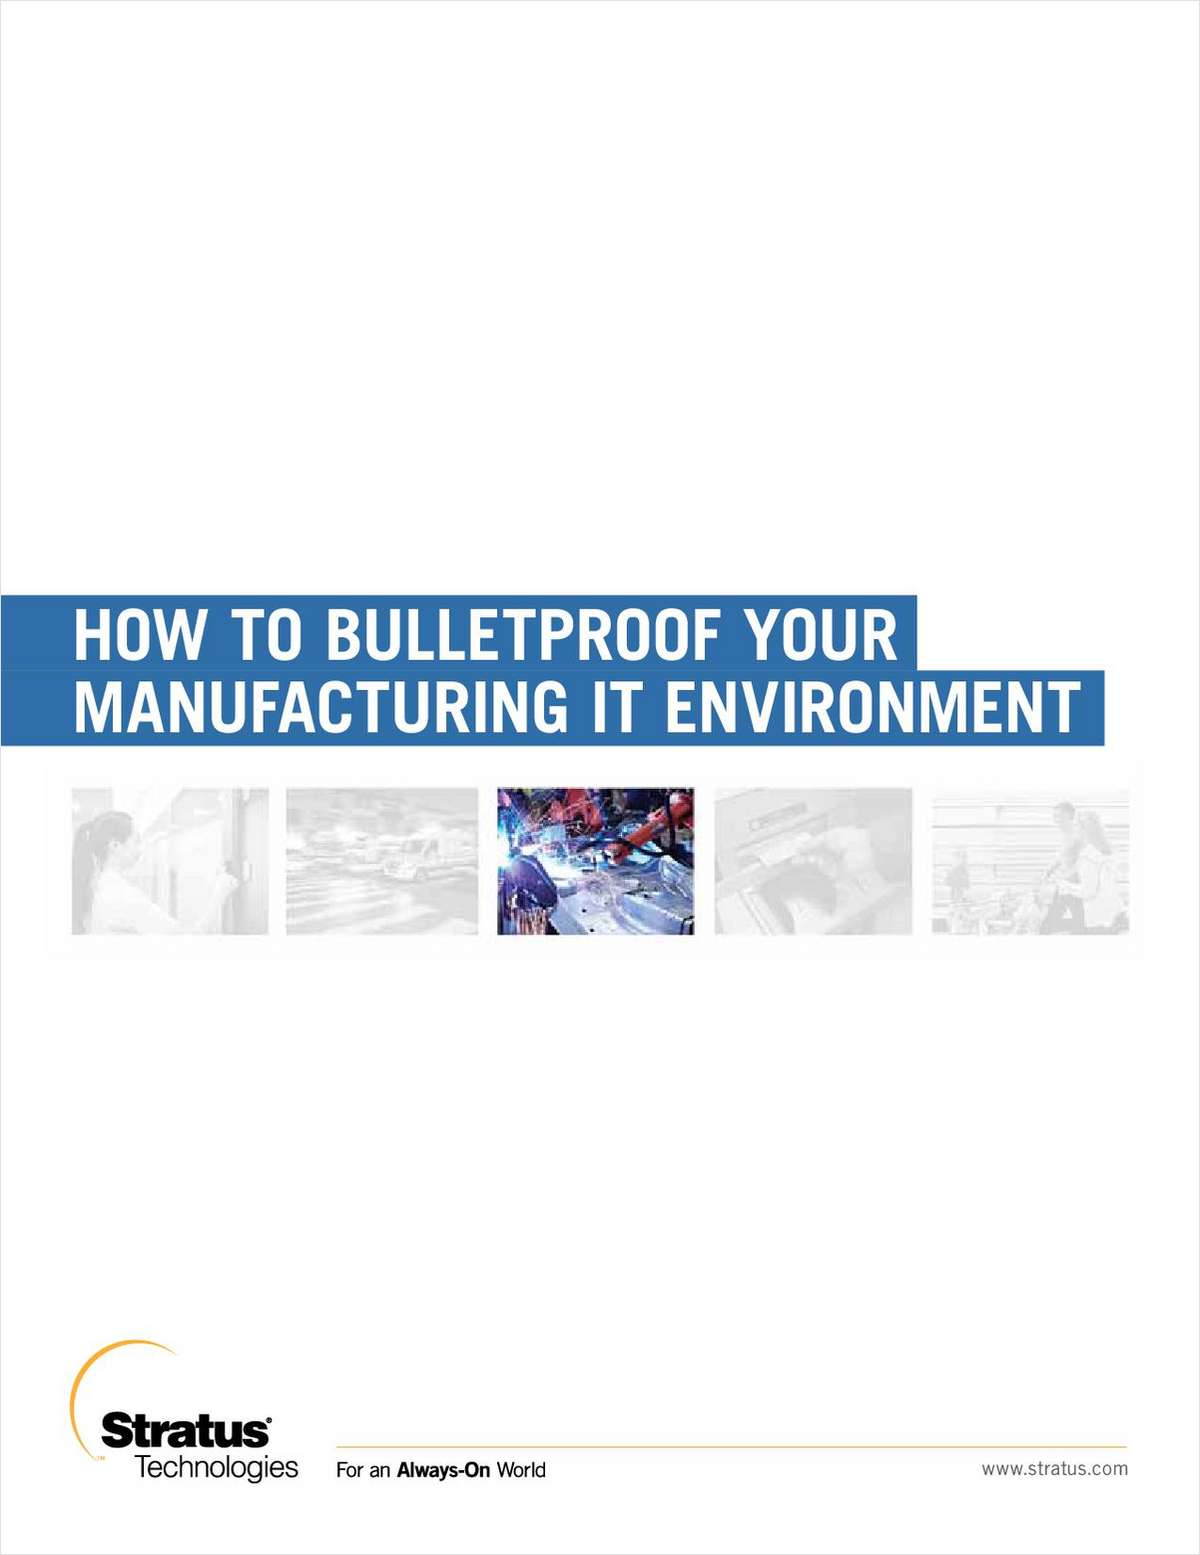 How to Bulletproof Your Manufacturing IT Environment